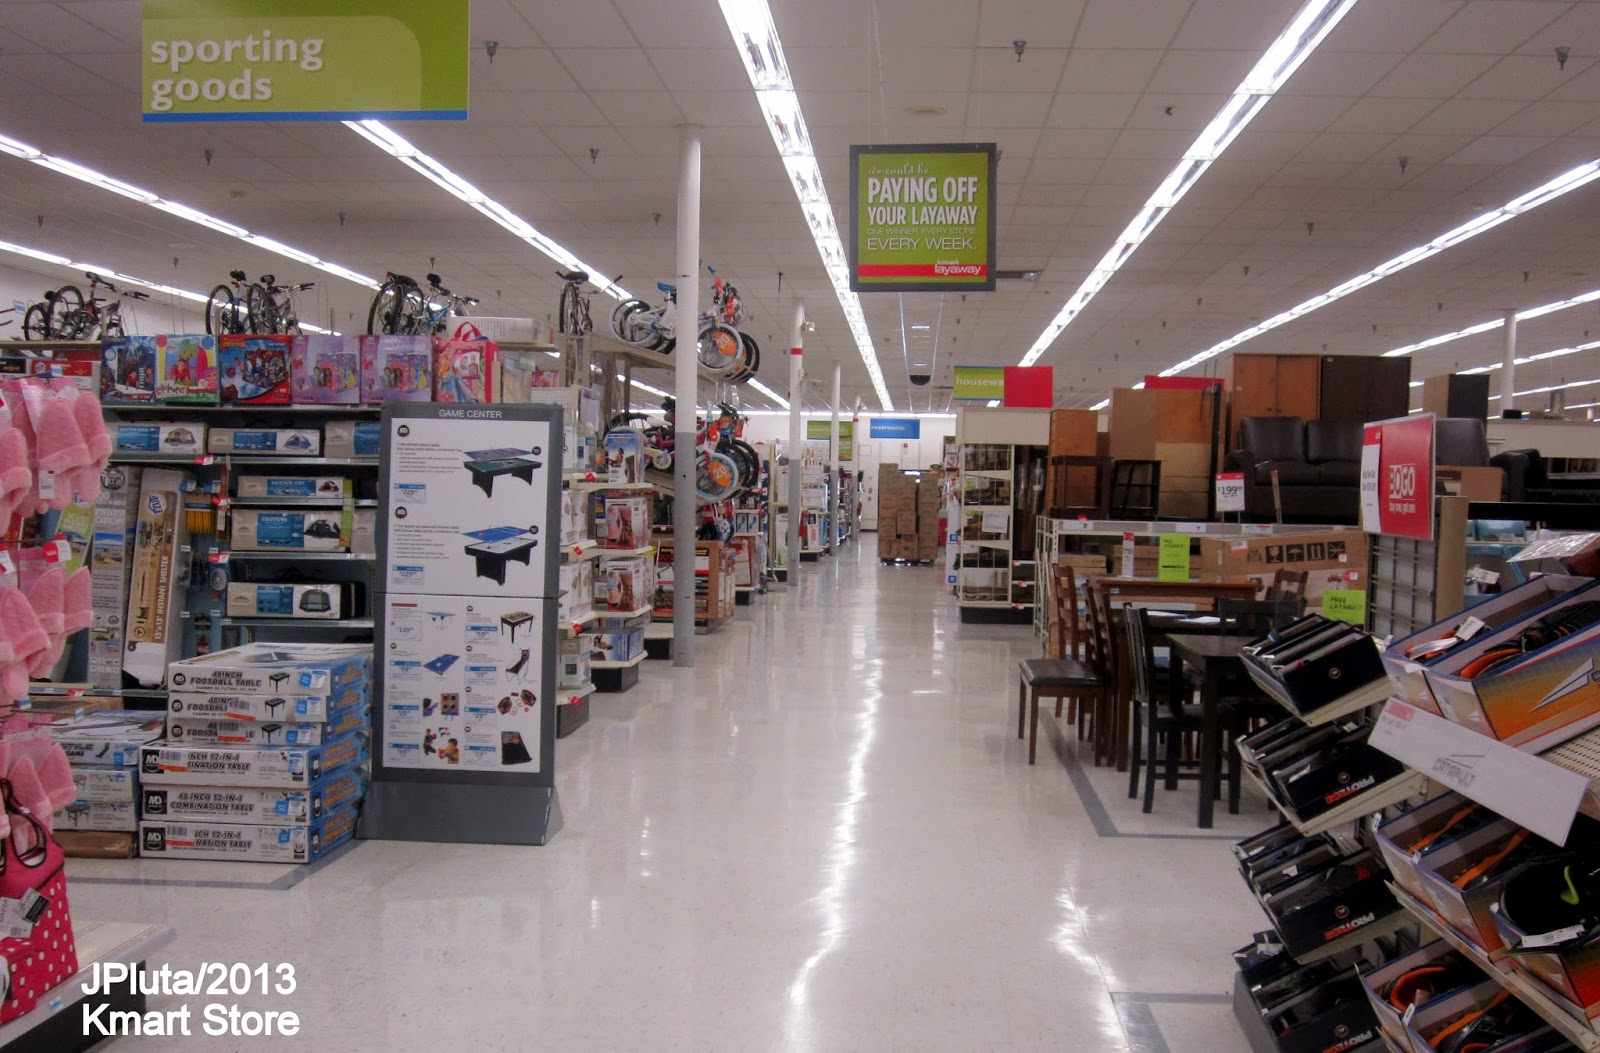 Super Kmart Blog Hendersonville Tn Big Kmart KMART+Store+Sporting+Goods+Department+Aisle,+Kmart+Store.JPG